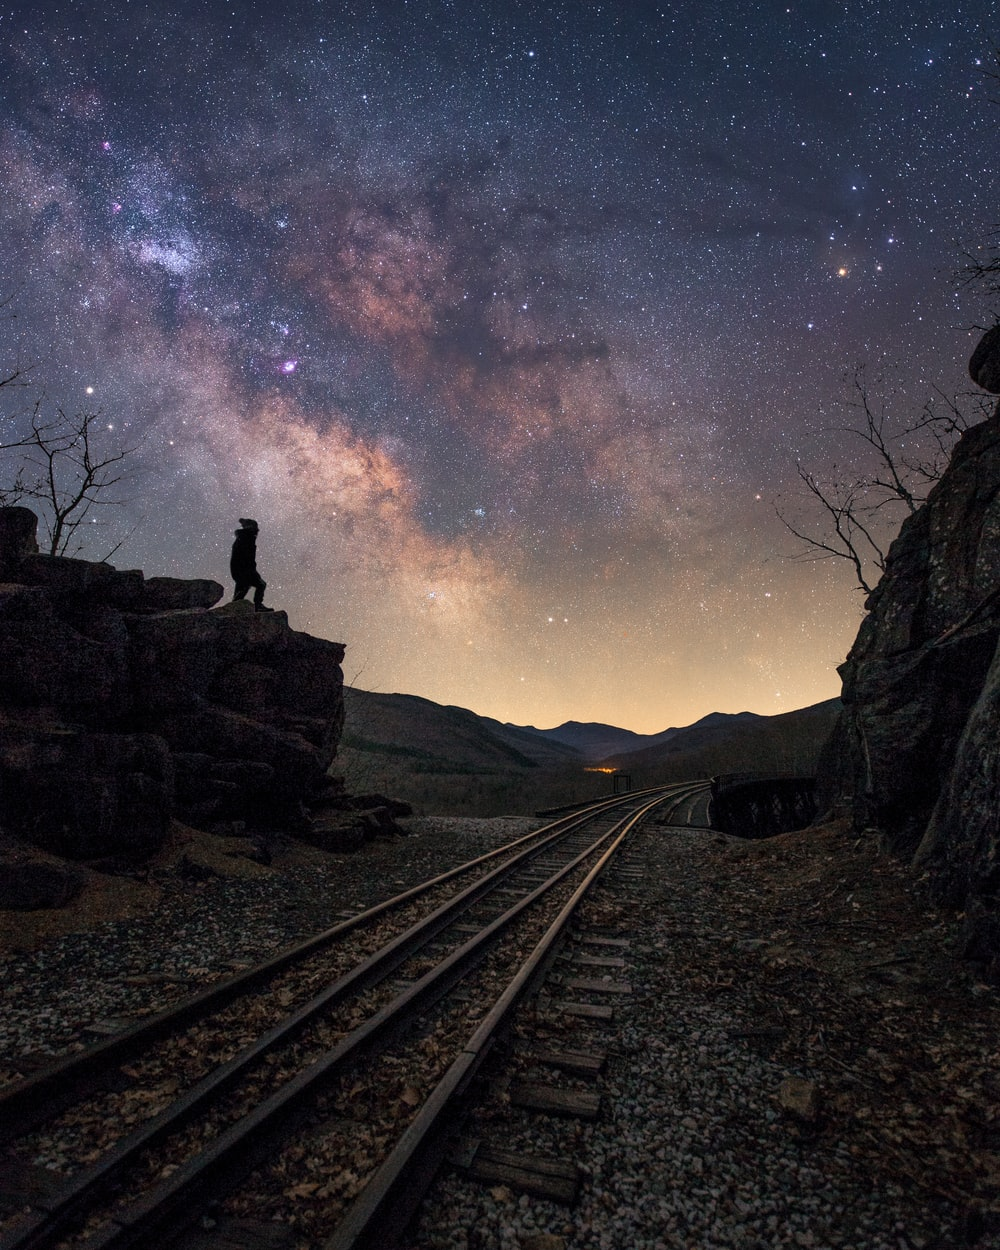 man standing on train rail during night time